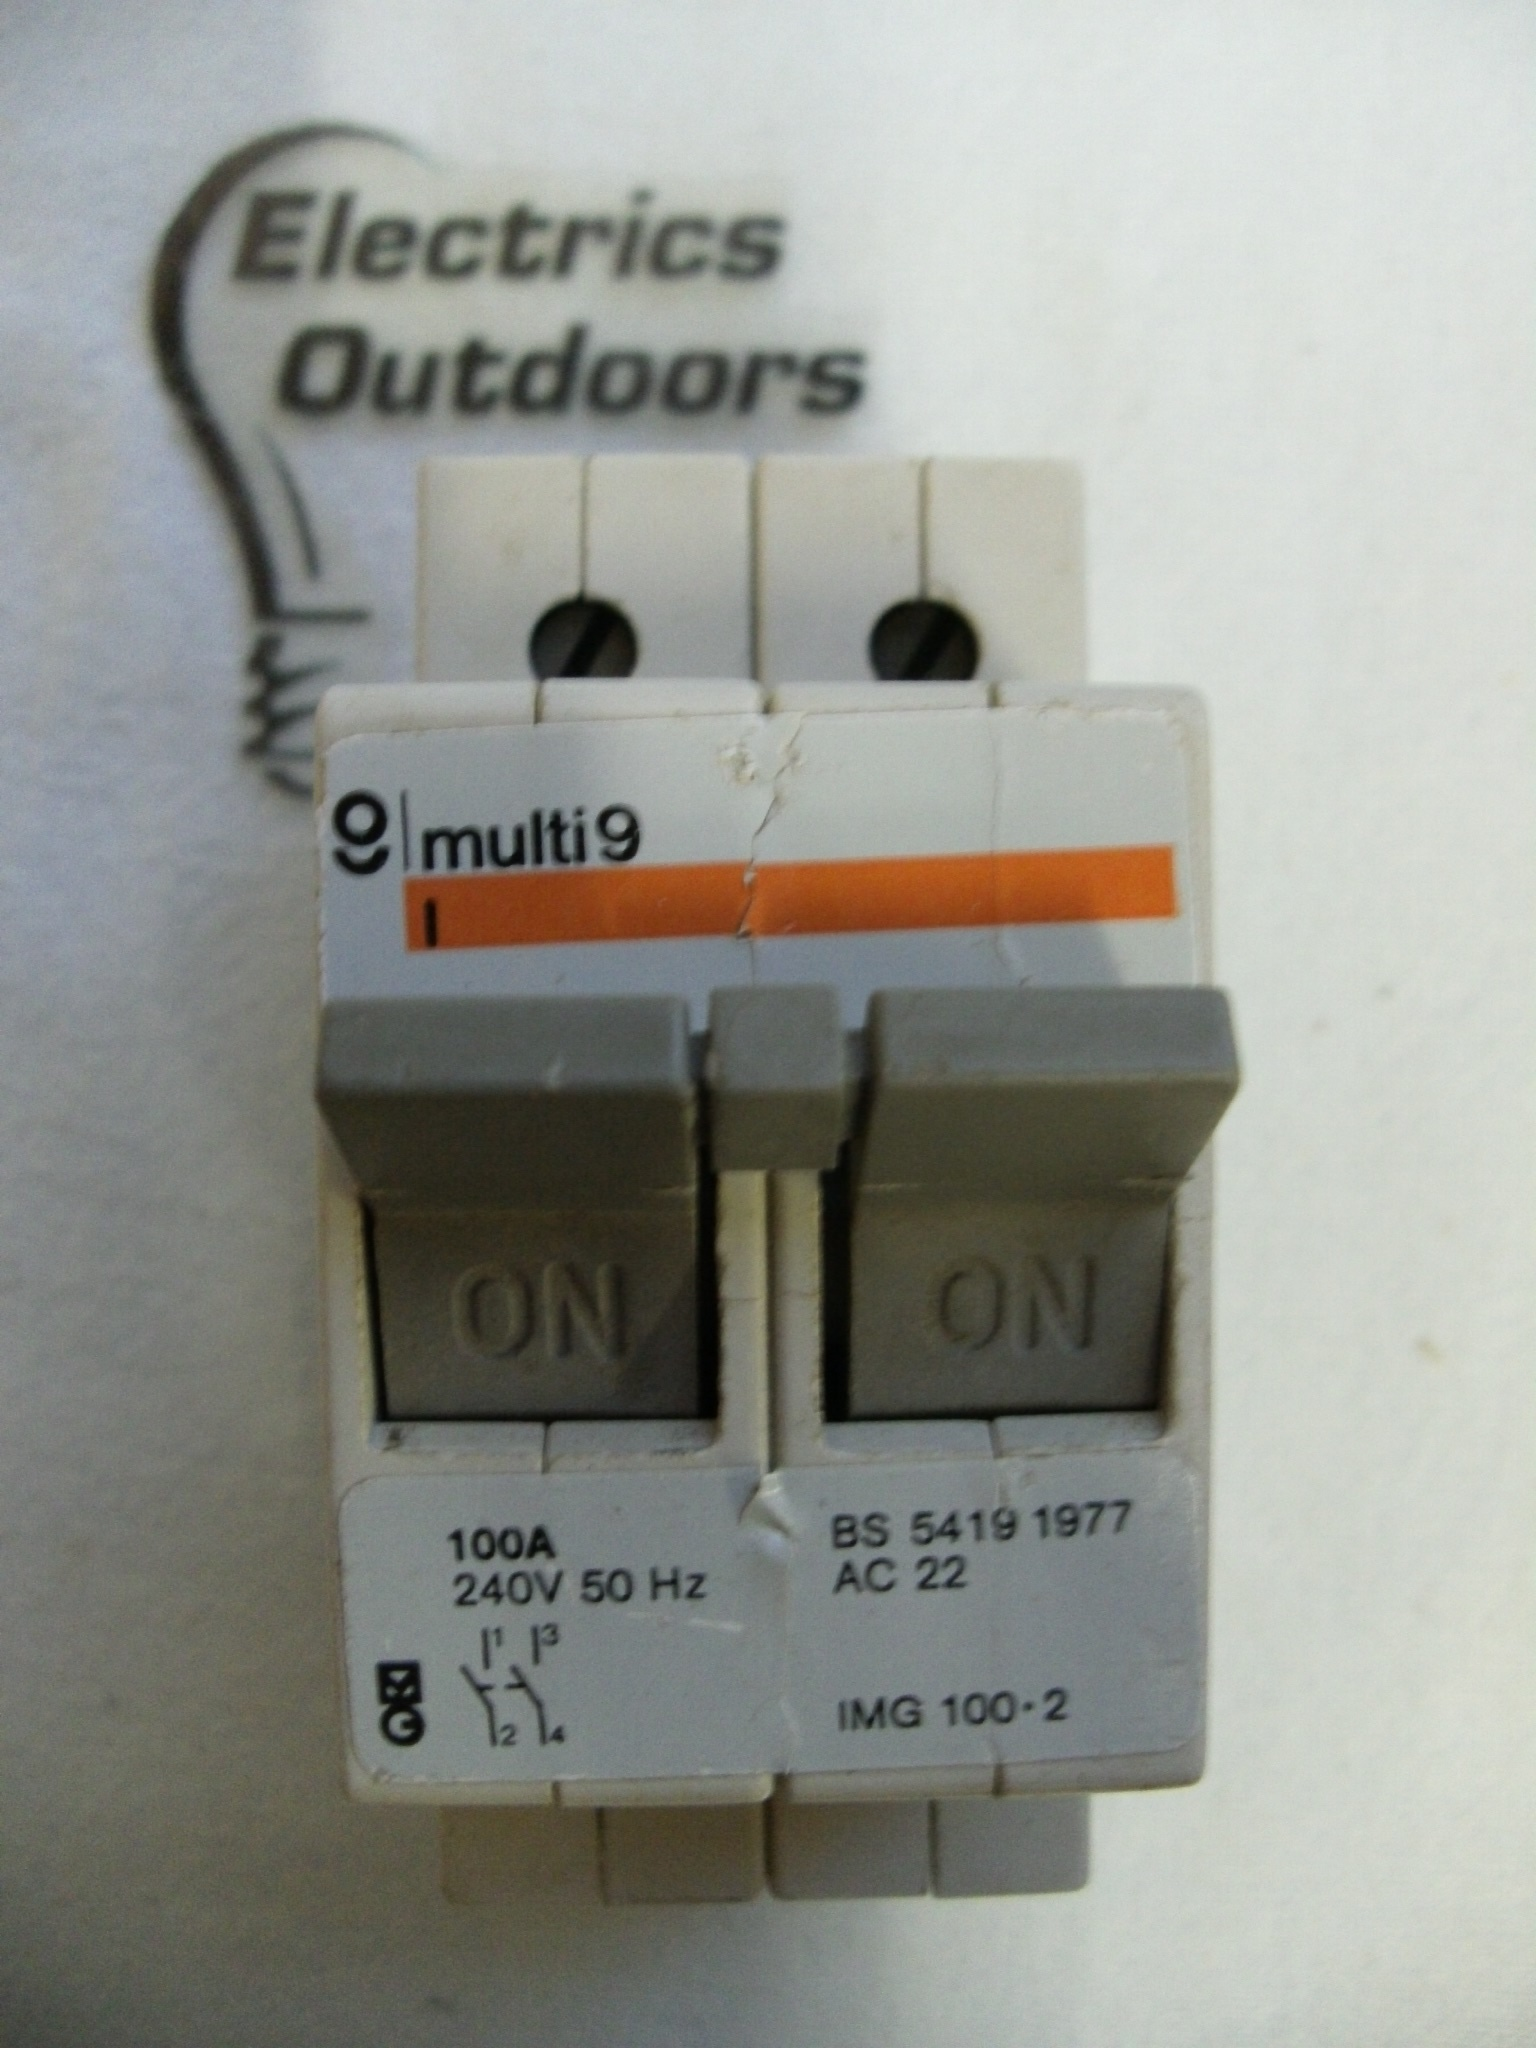 MERLIN GERIN 100 AMP DOUBLE POLE MAIN SWITCH DISCONNECTOR 240V IMG 100 2 BS 5419